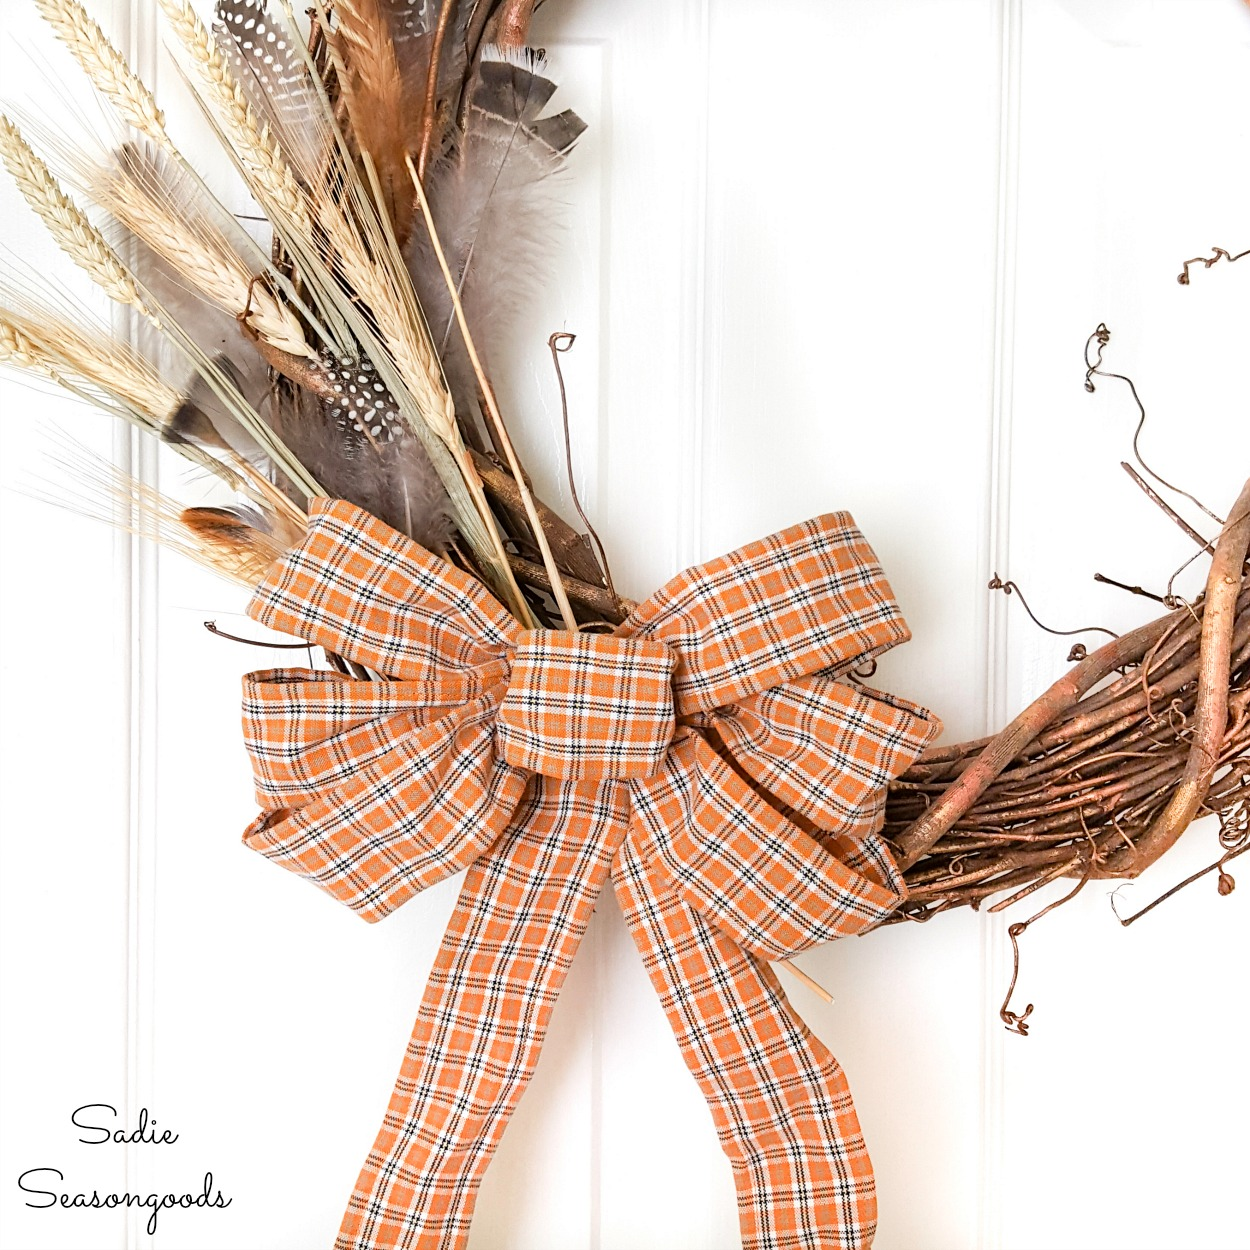 Plaid Ribbon from an Upcycled Shirt for a Harvest Wreath